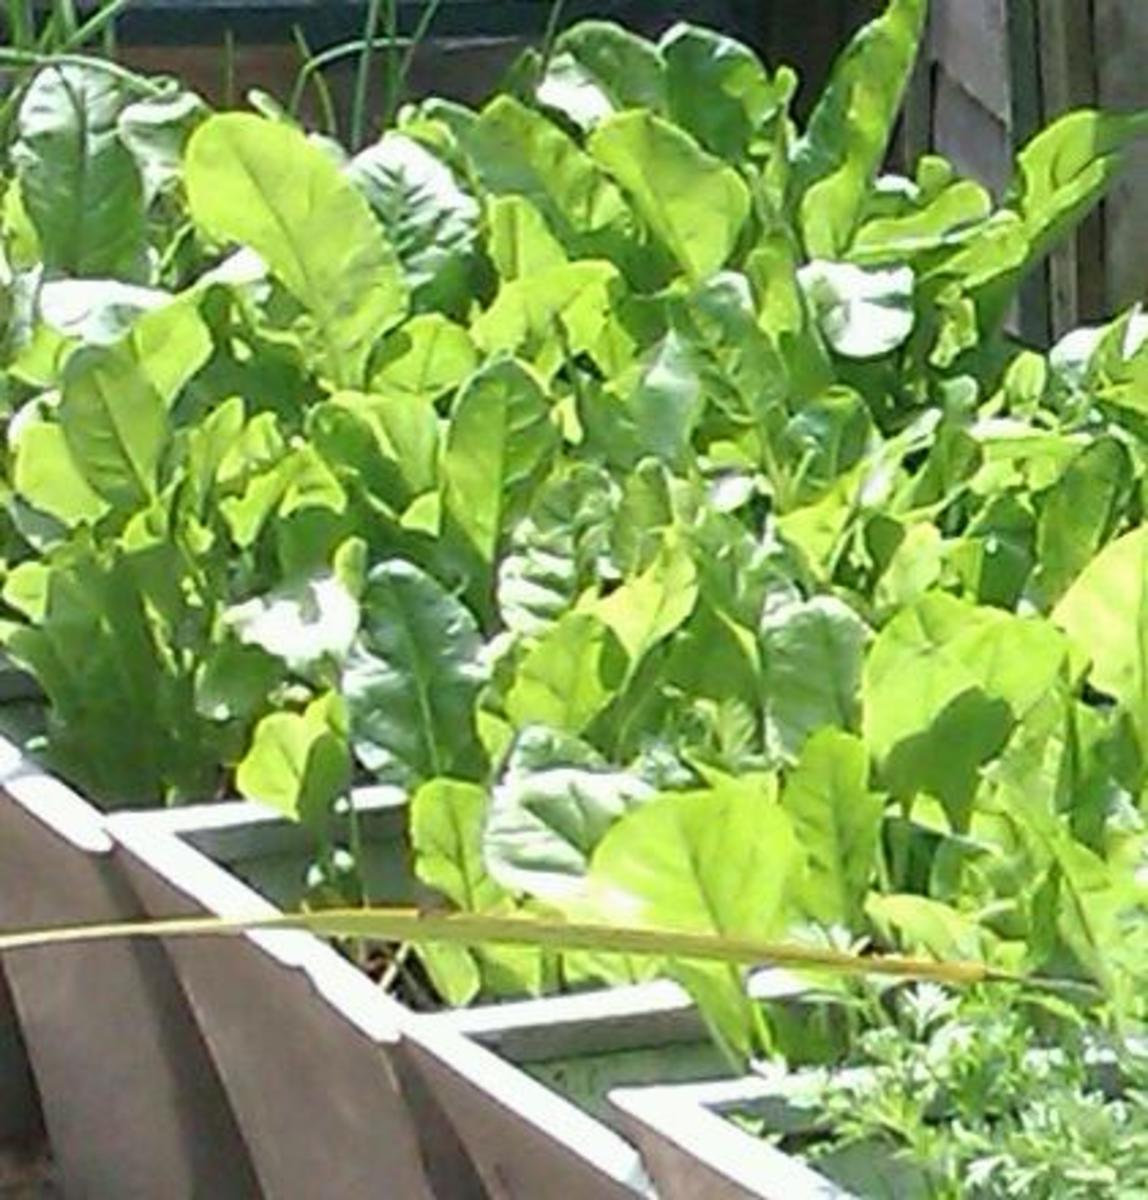 Growing Vegetables In Pots - How To Grow Shade Loving Edible Plants